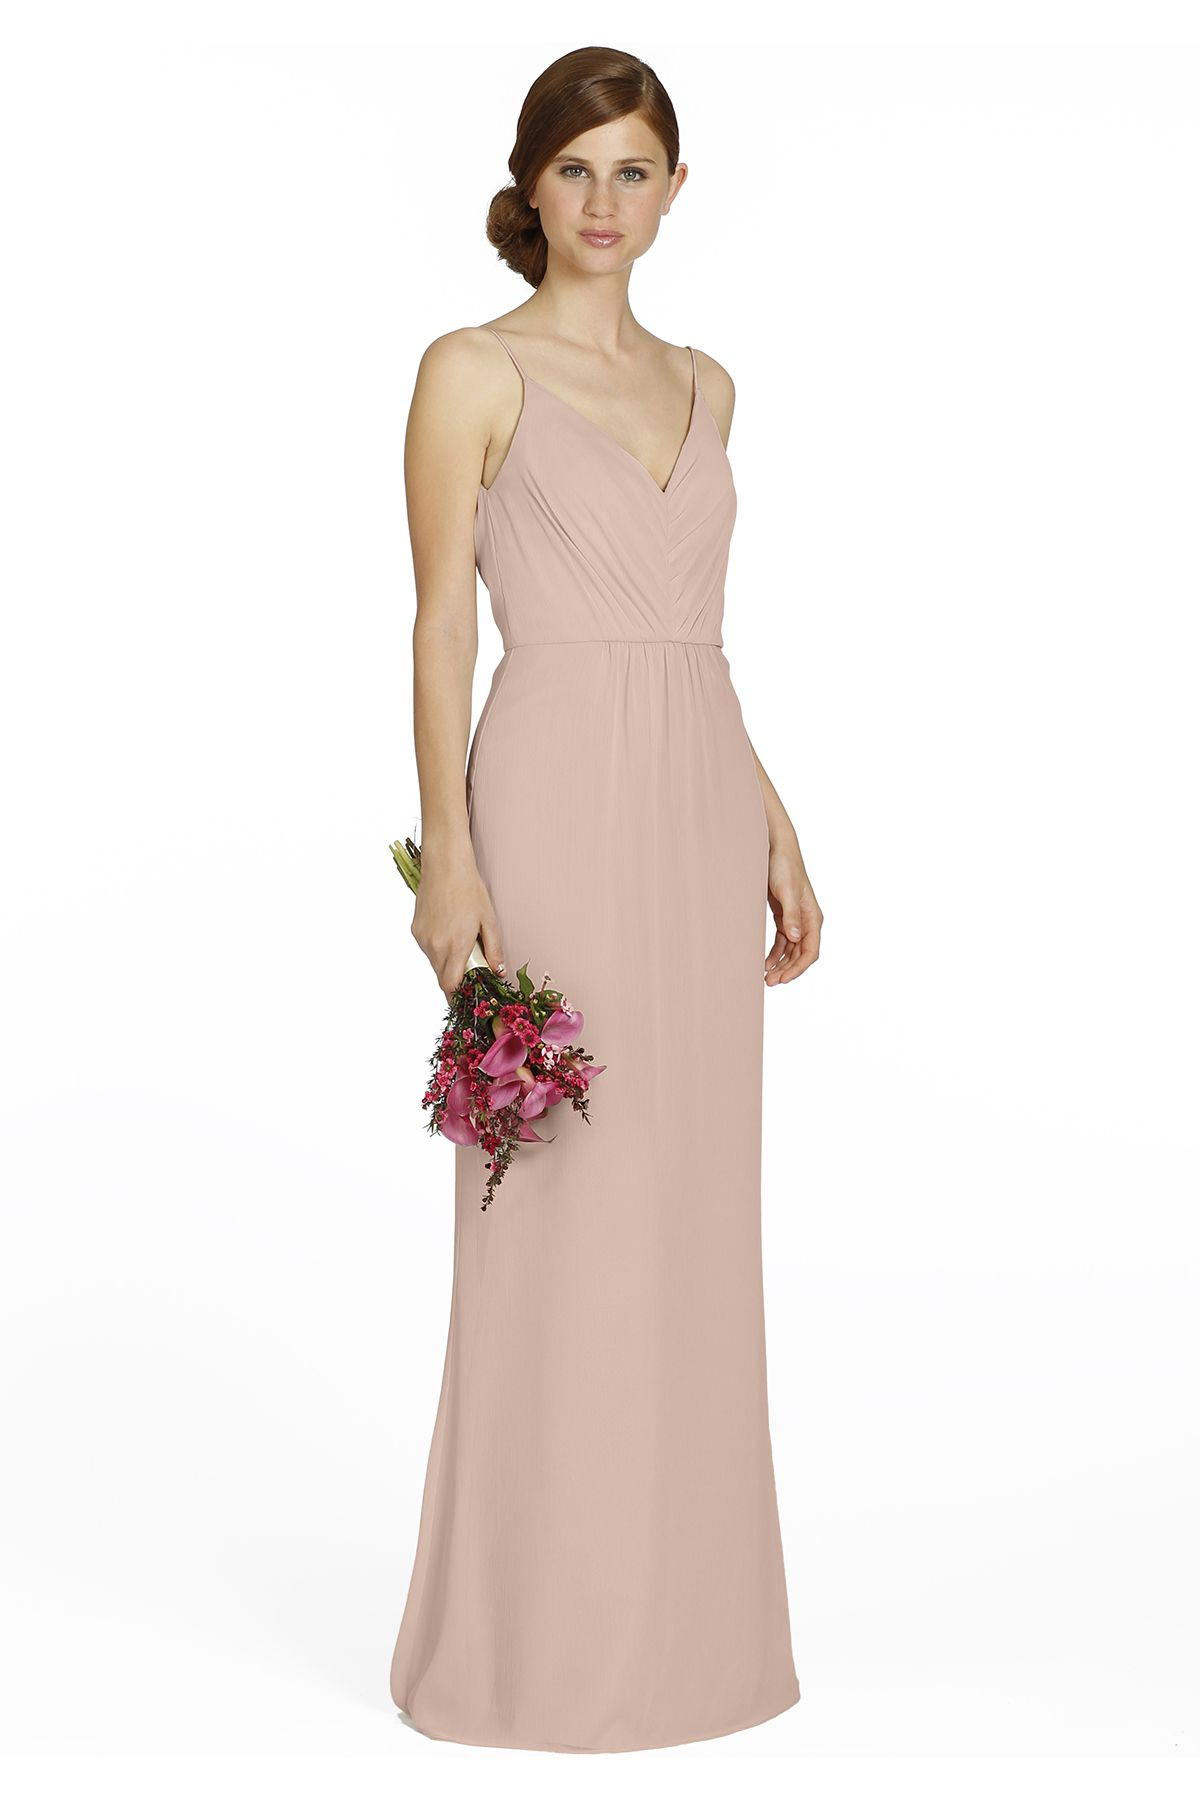 Shop jim hjelm bridesmaid dress 5358 chiffon in chiffon at shop jim hjelm bridesmaid dress 5358 chiffon in chiffon at weddington way find the ombrellifo Gallery